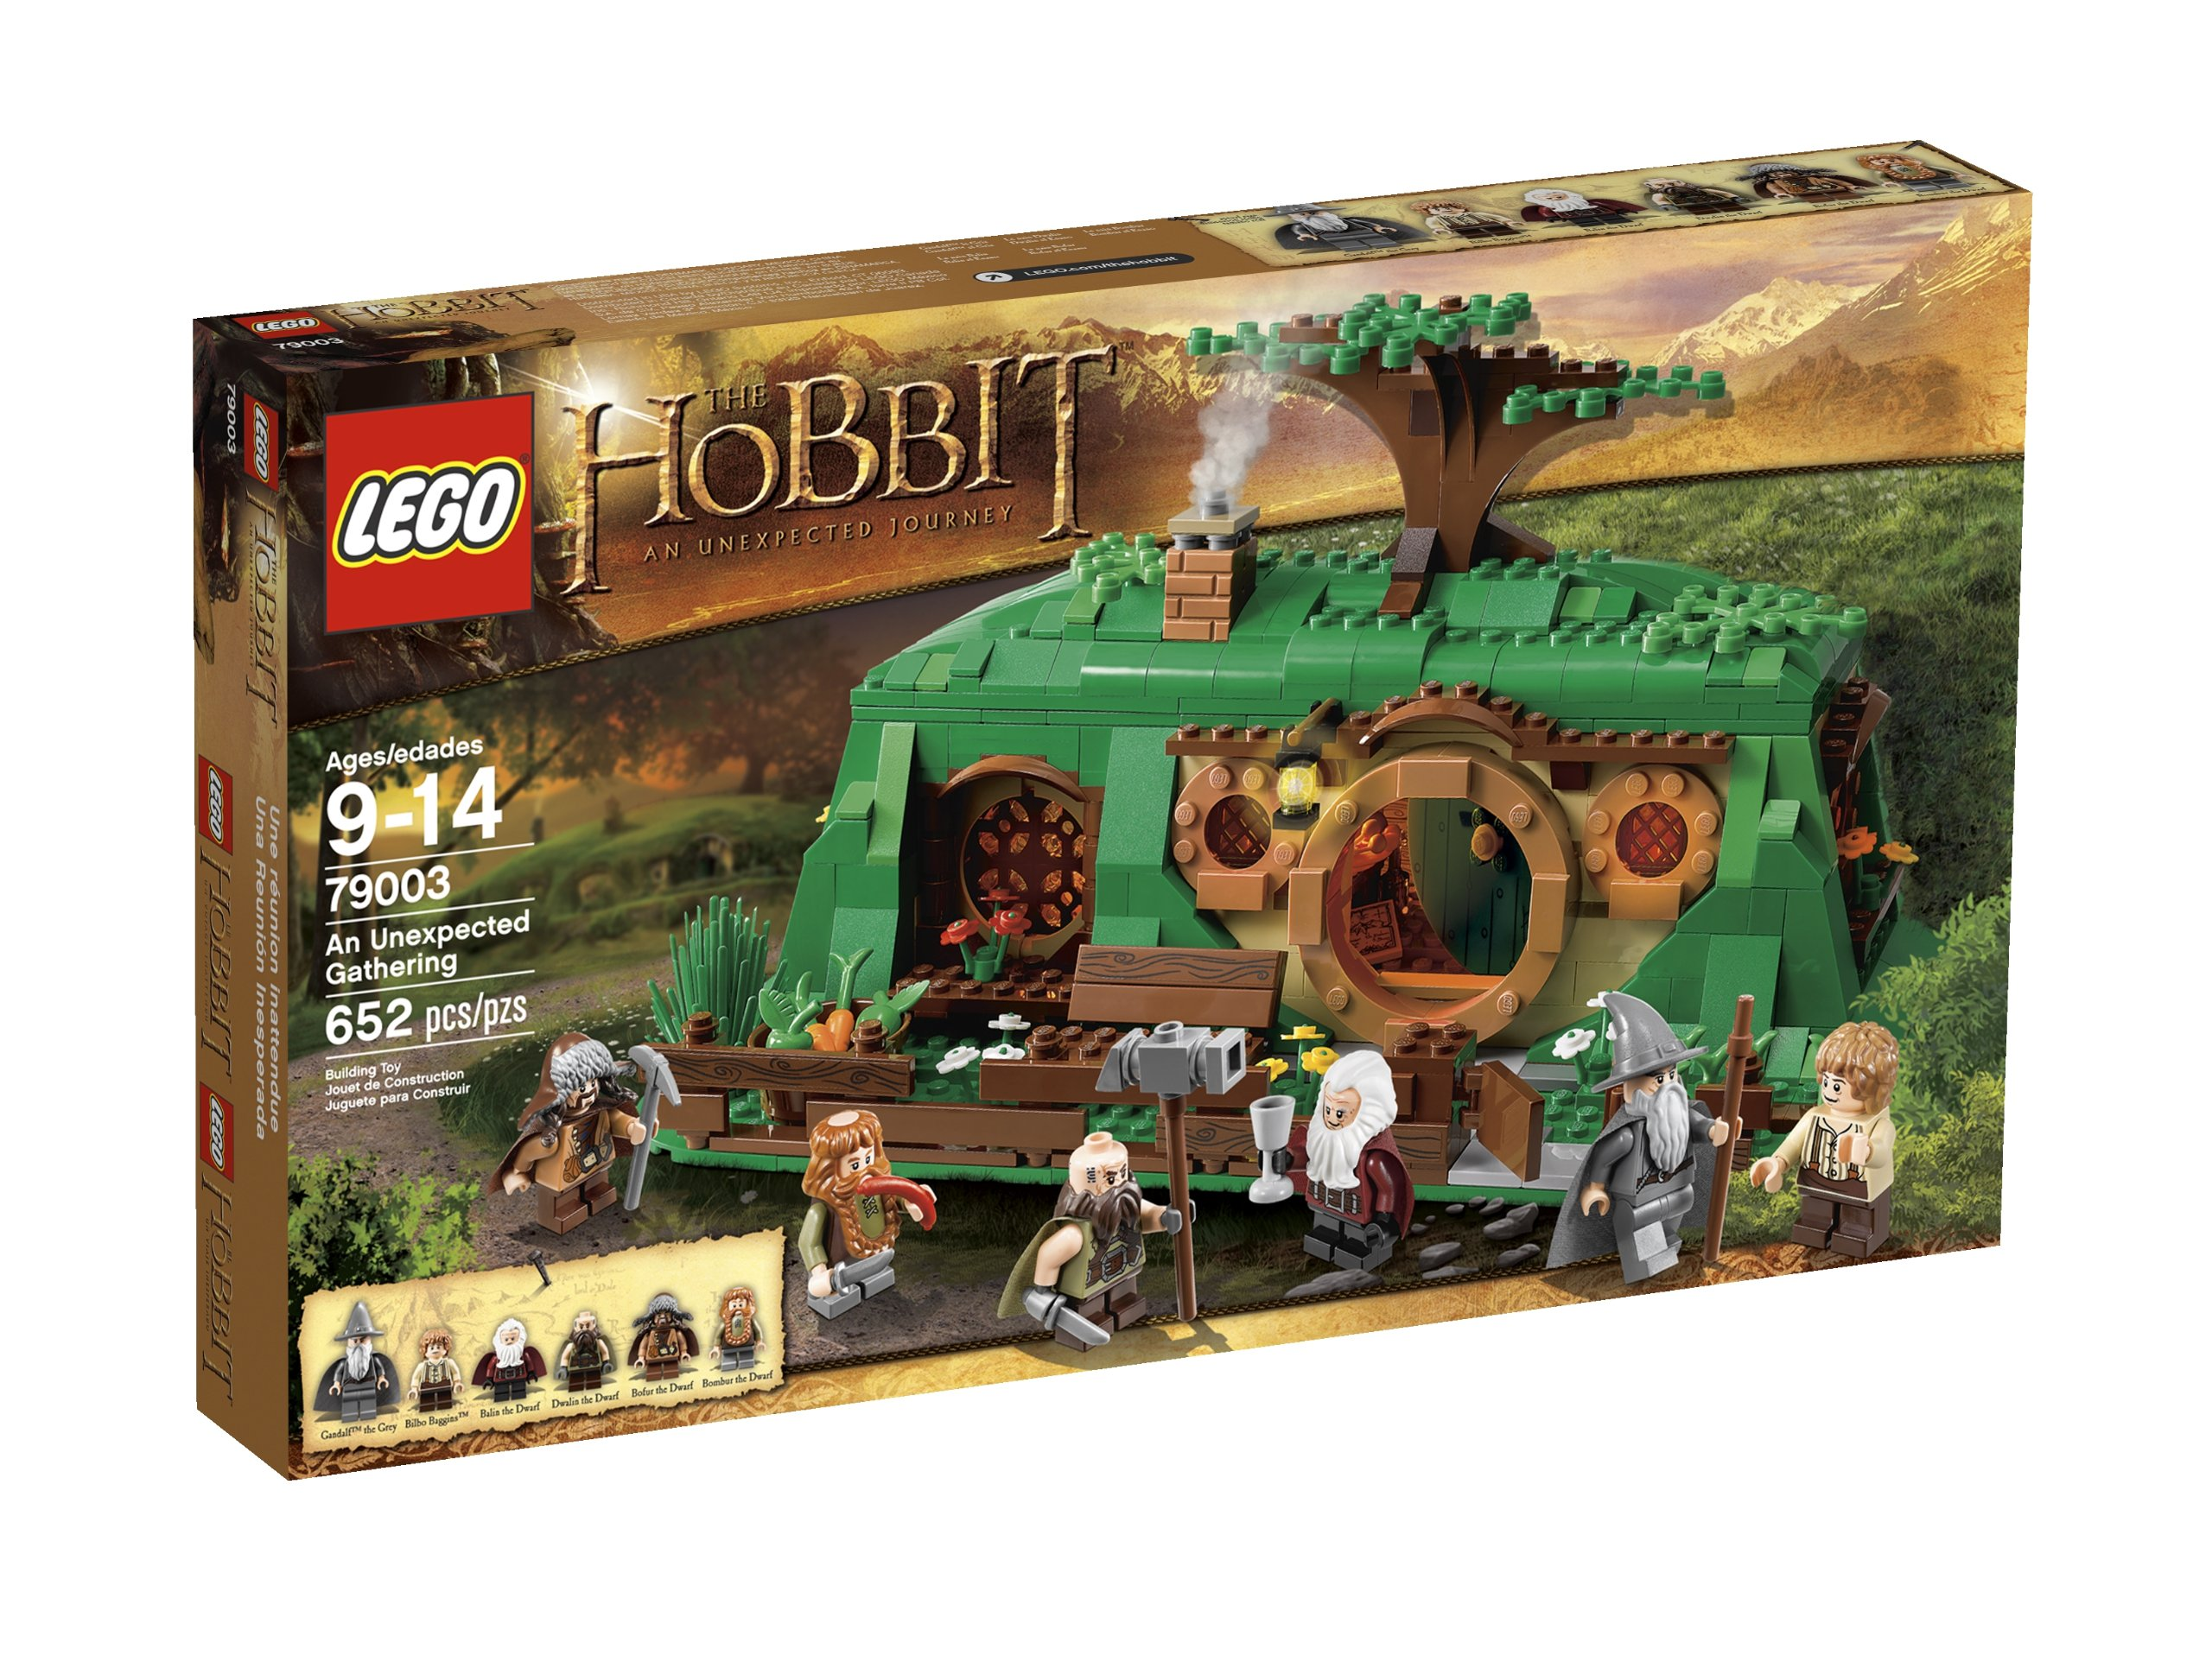 The Gathering 79003 Lego Unexpected An Hobbit E2YWH9ID